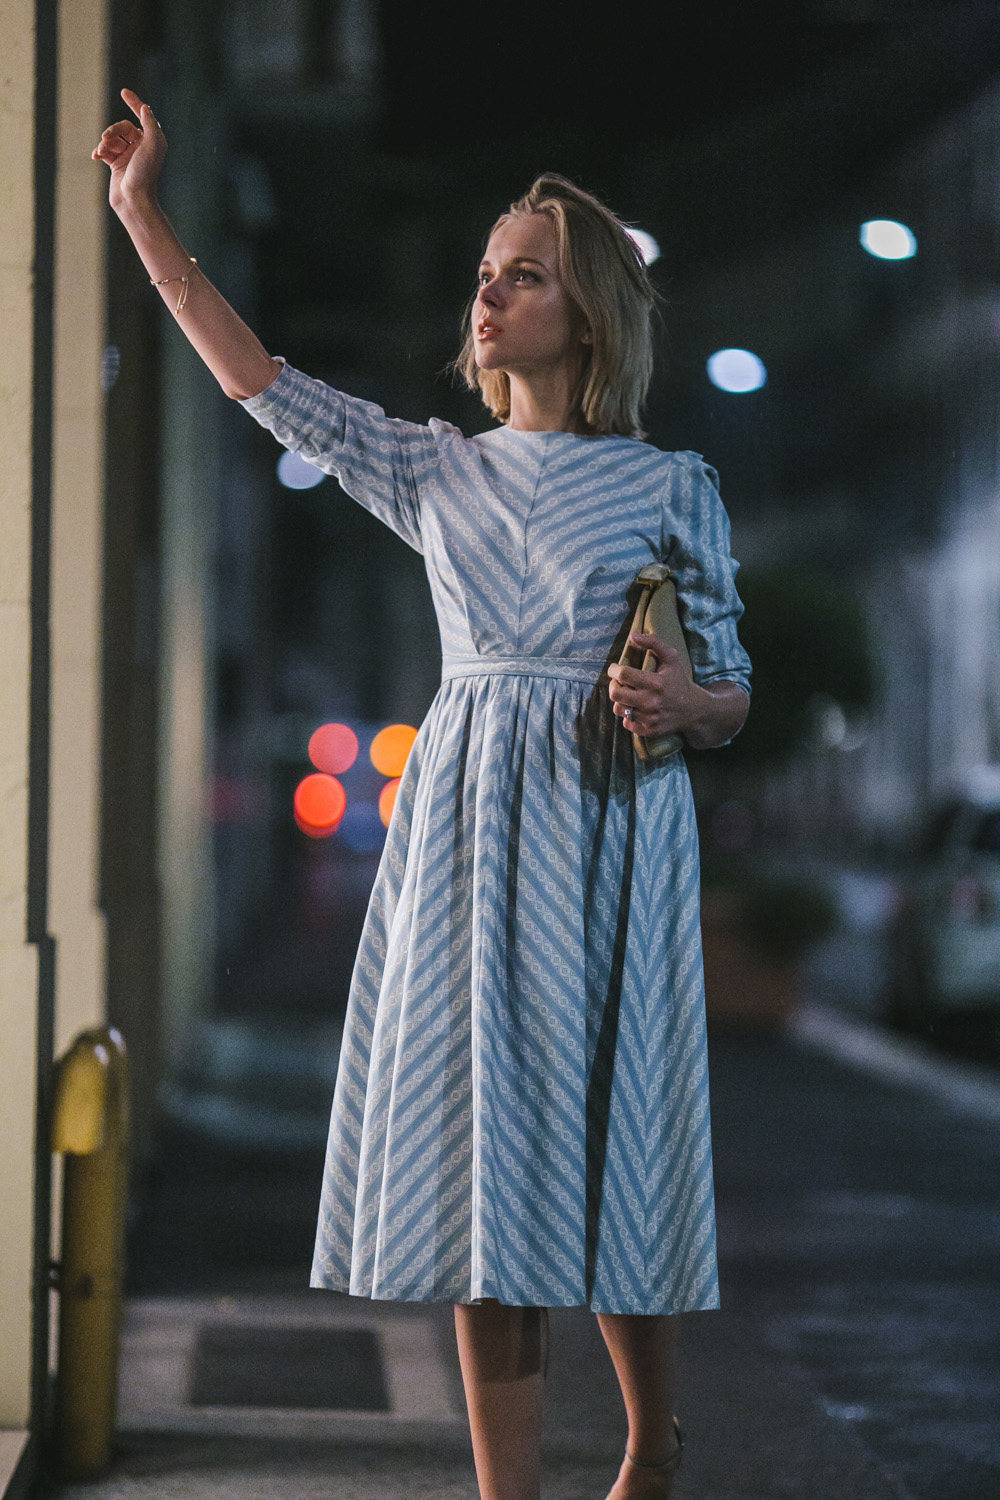 darya kamalova thecablook com russian italian fashion lifestyle blogger in milan disaronno wears versace event in segheria in rafinad dress marni clutch jimmy choo choes-4816